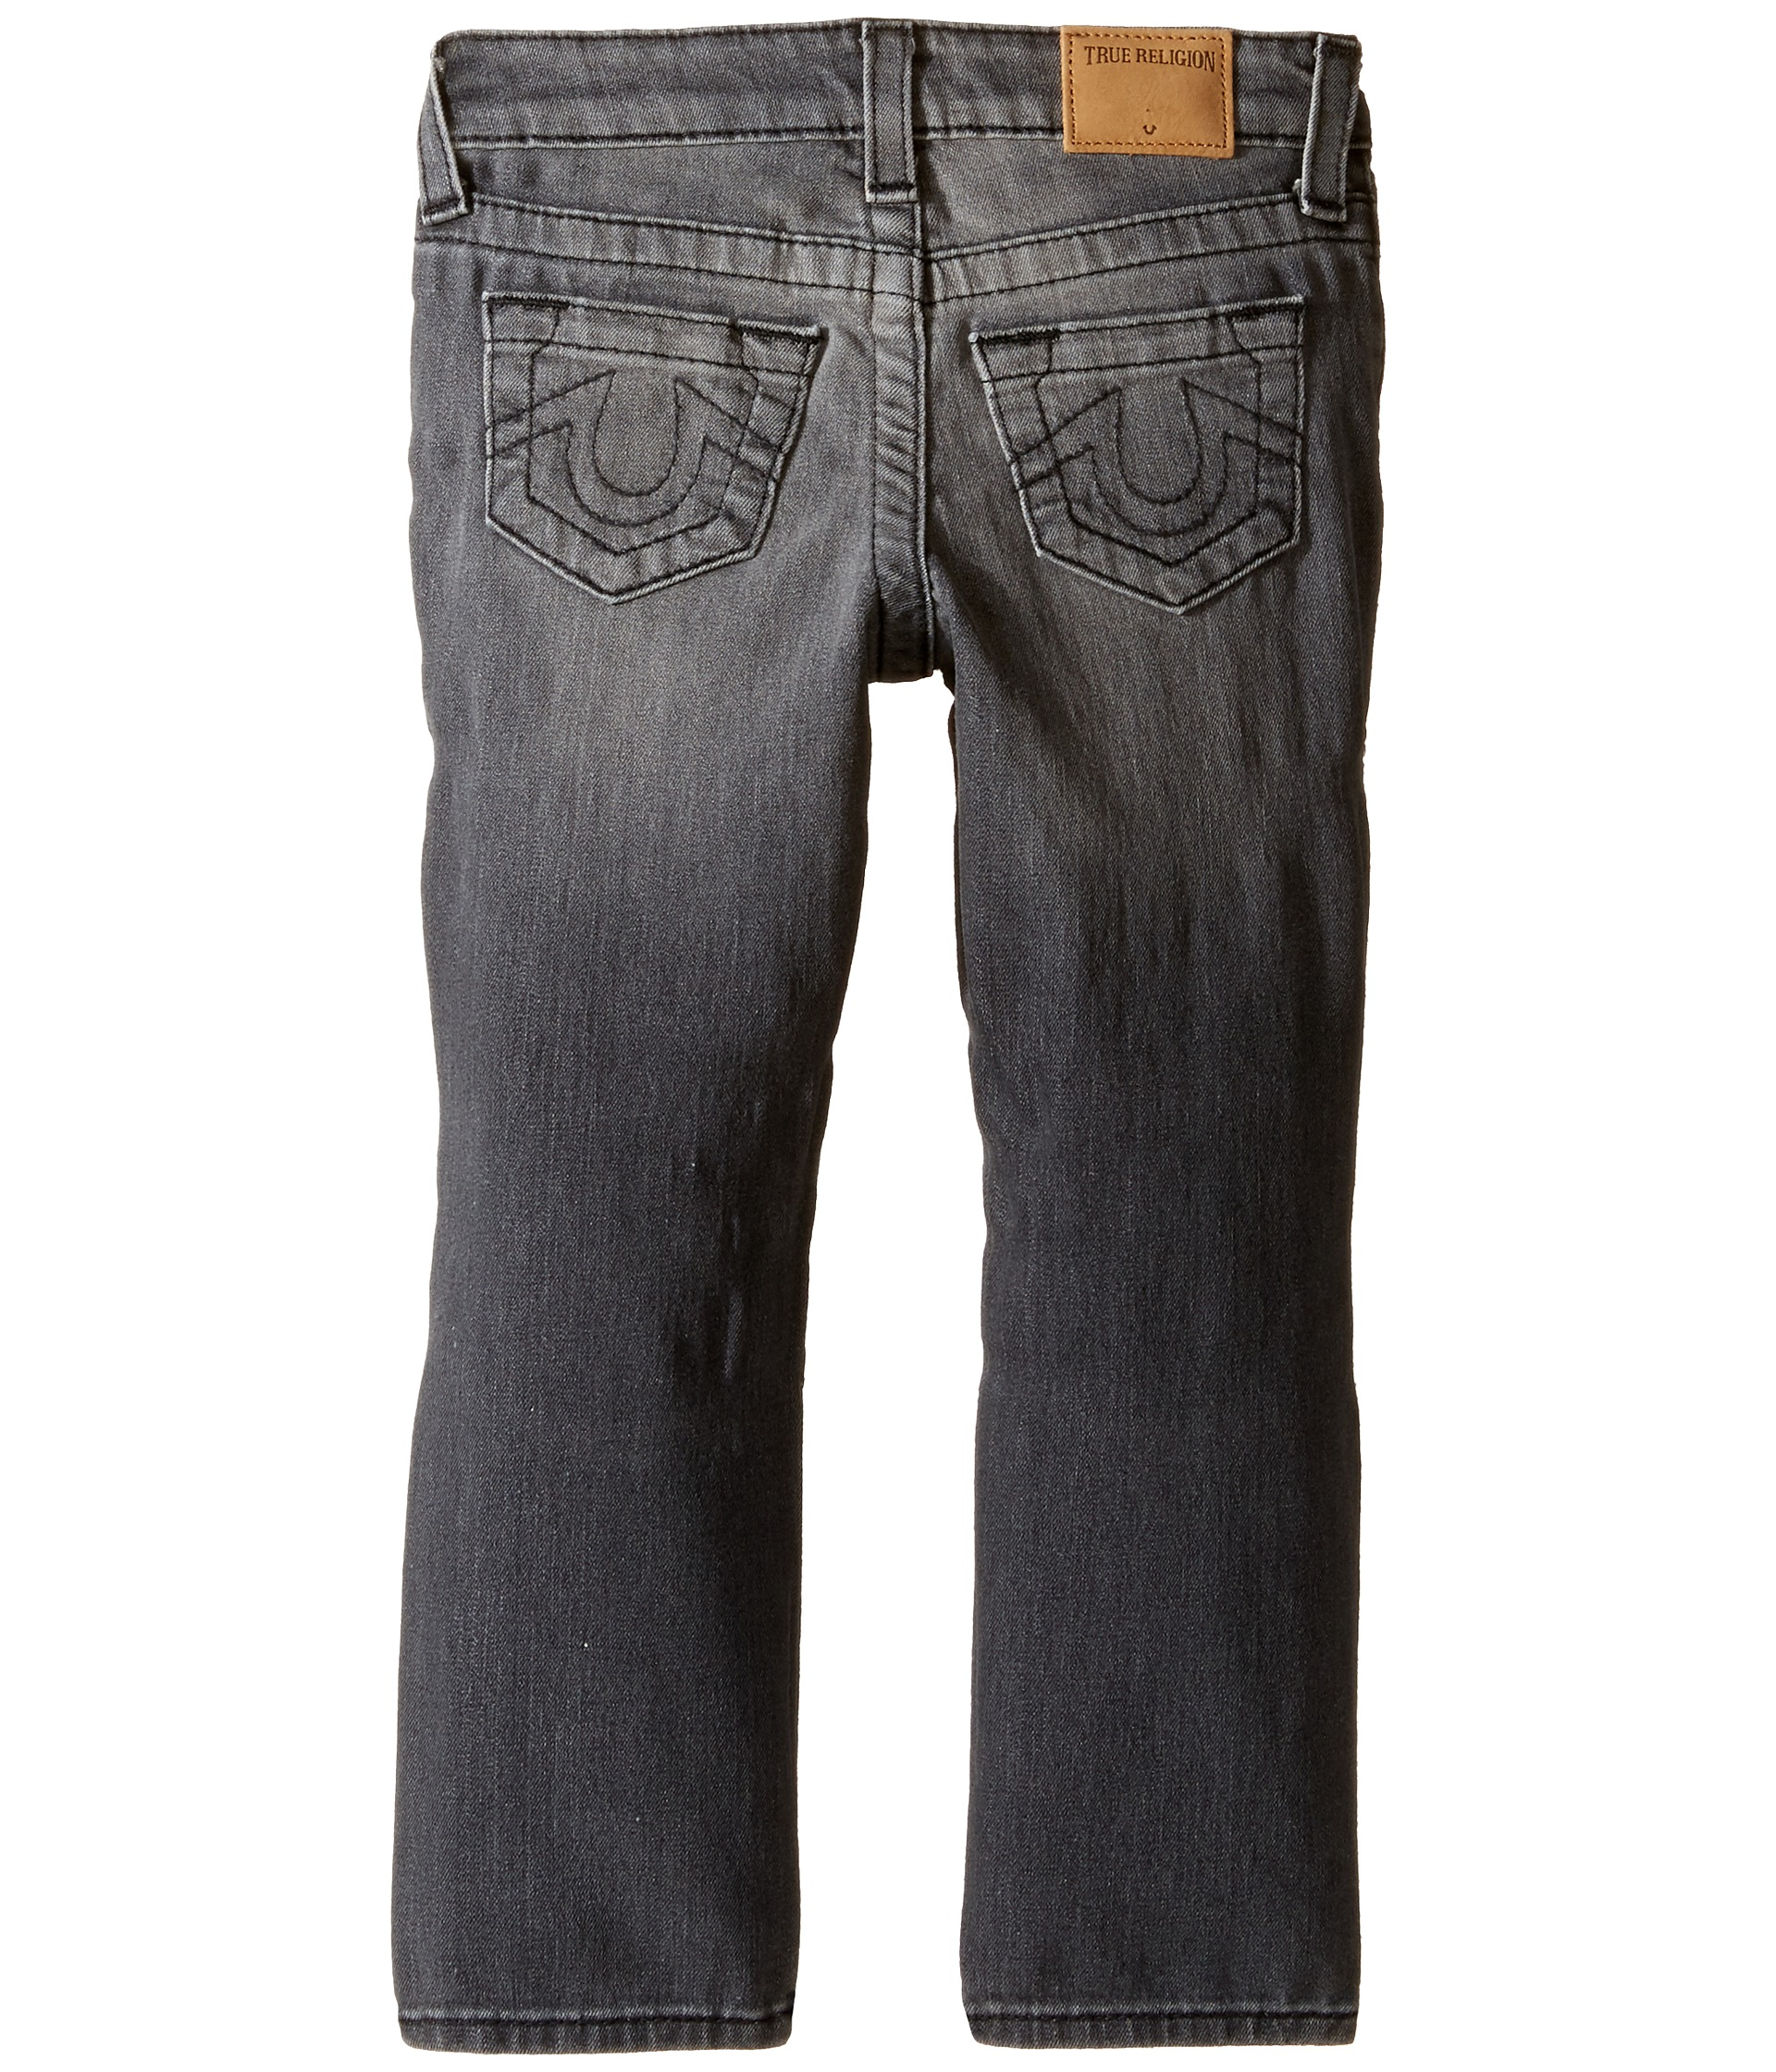 ★ True Religion Brand Jeans Geno Shorts (Toddler Boys Little Boys) @ Check Price Kids New Arrivals, Shop Sale Price Today and Get Up to % Off [TRUE RELIGION BRAND JEANS GENO SHORTS (TODDLER BOYS LITTLE BOYS)] Find this Season s Must-Have Styles From Top Brands Order Online Today. Find Our Lowest Possible Price!.